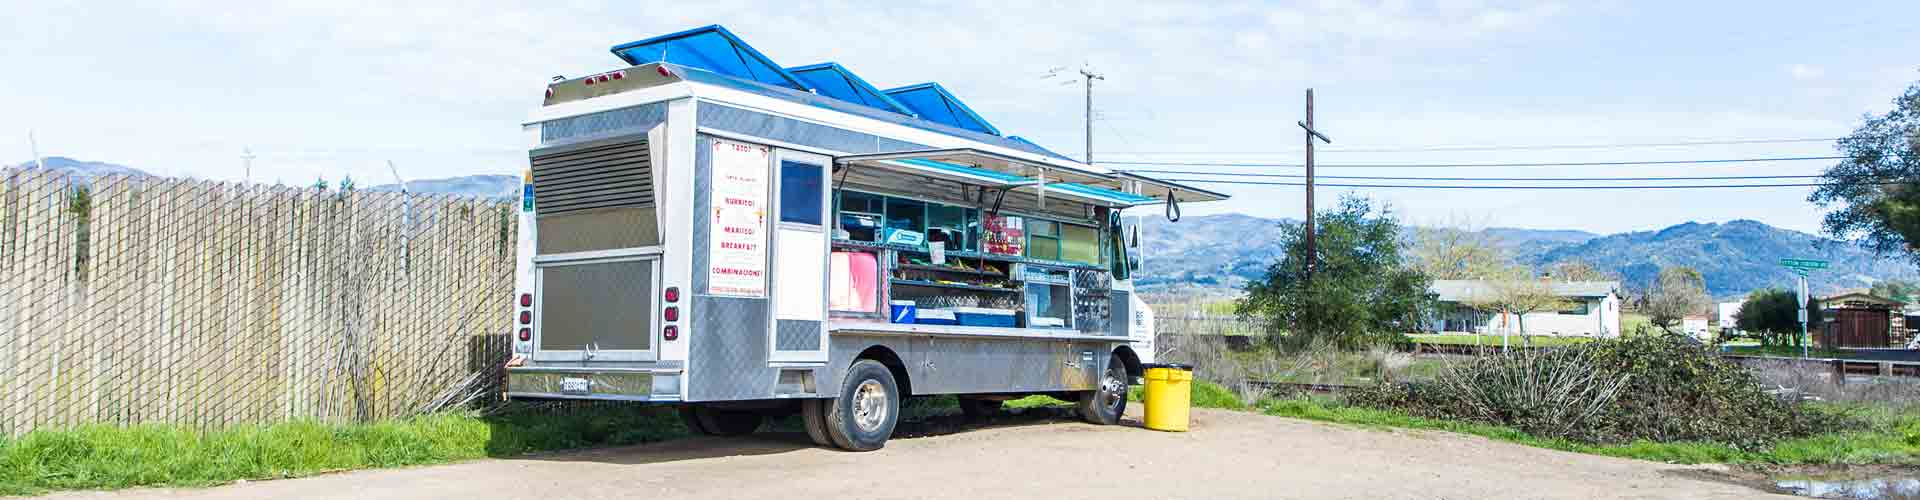 Taco-Foodtruck Landschaft Kalifornien Napa Valley